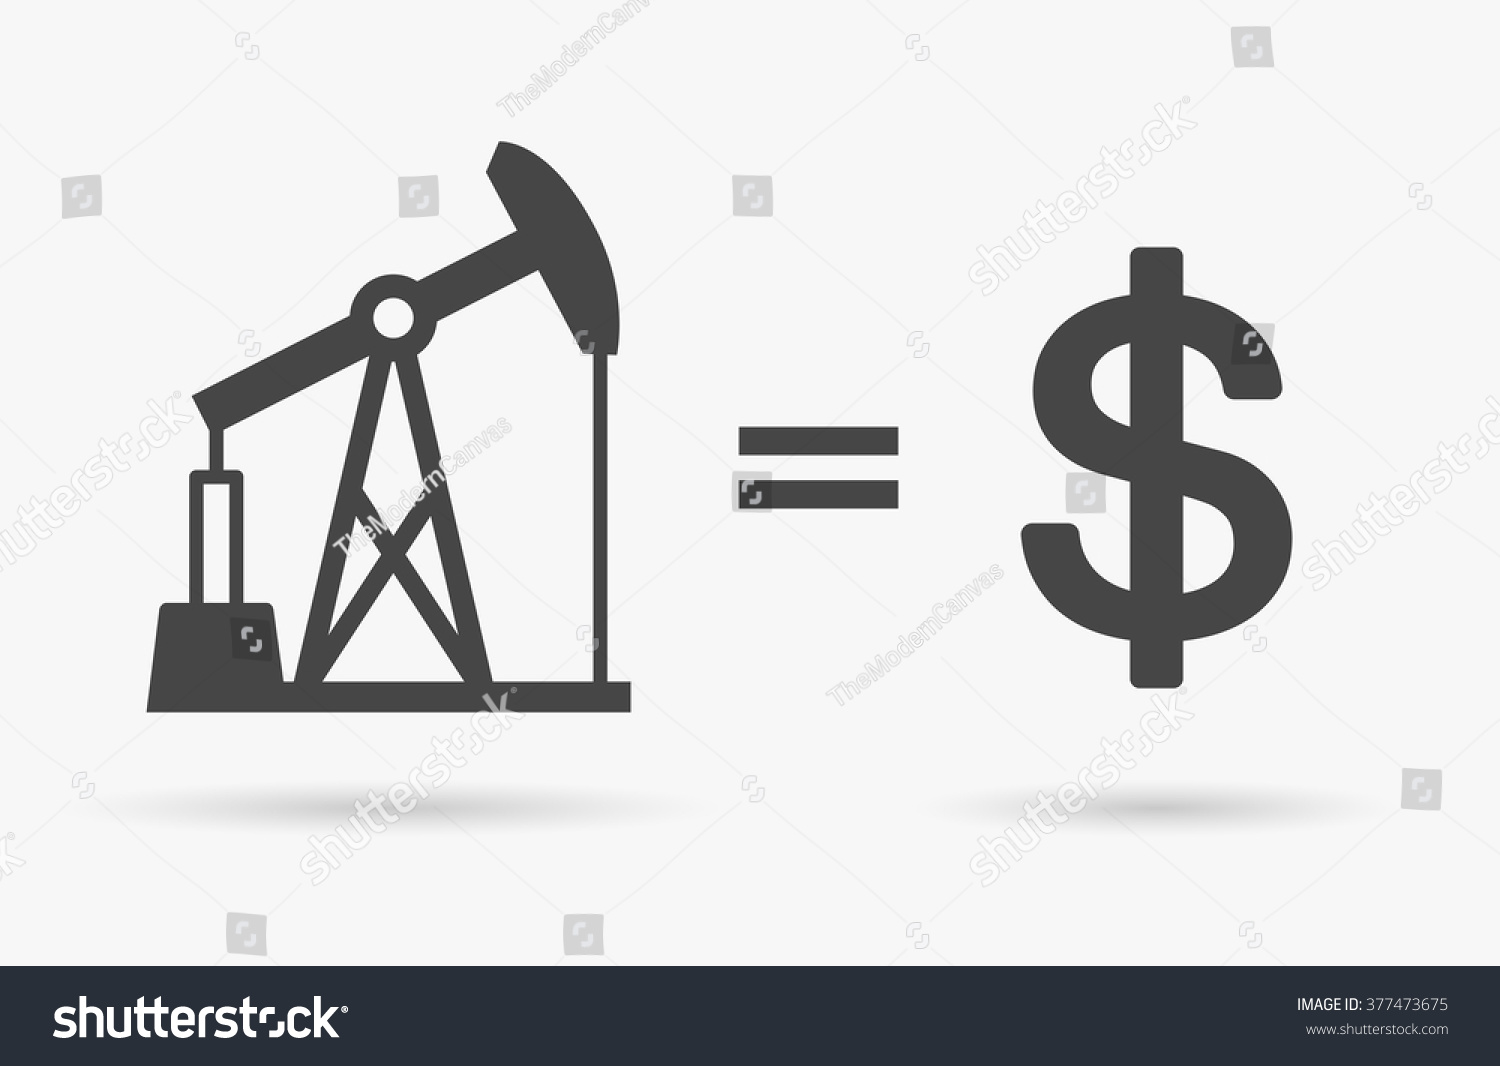 Crude Oil Sign Equals Dollar Currency Stock Vector Royalty Free